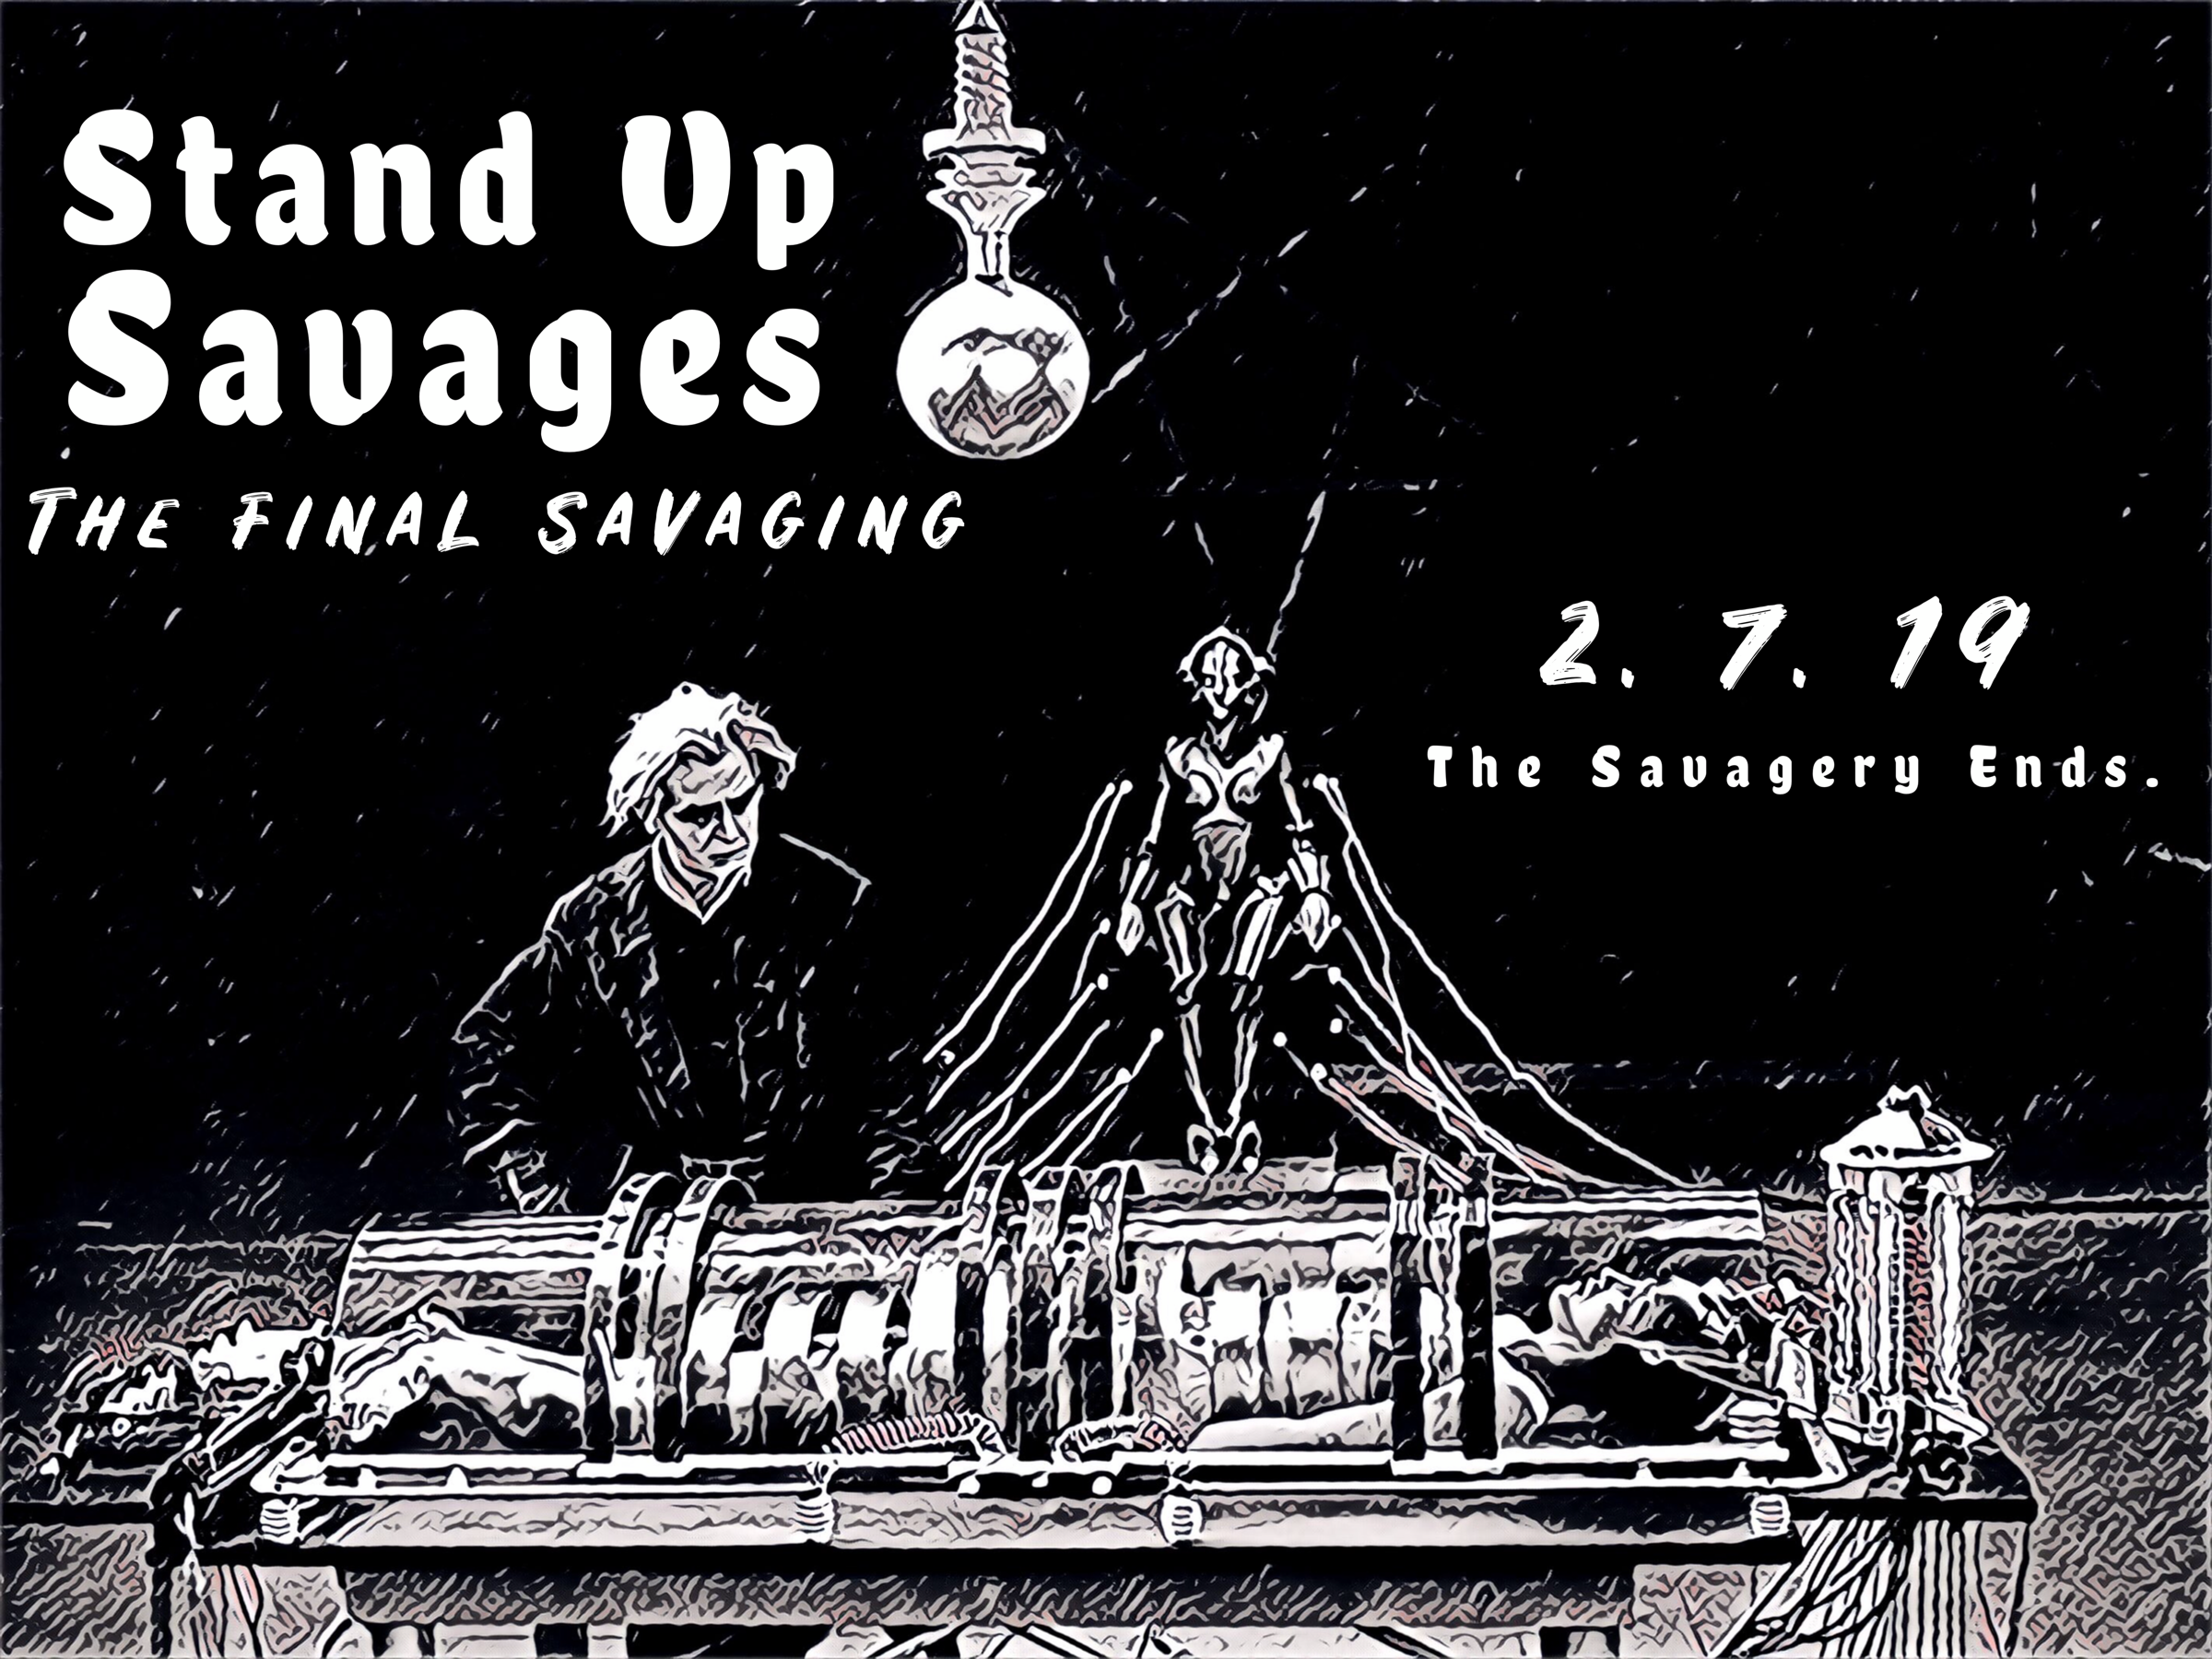 Stand Up Savages - Thursday - 8:00 Showtime